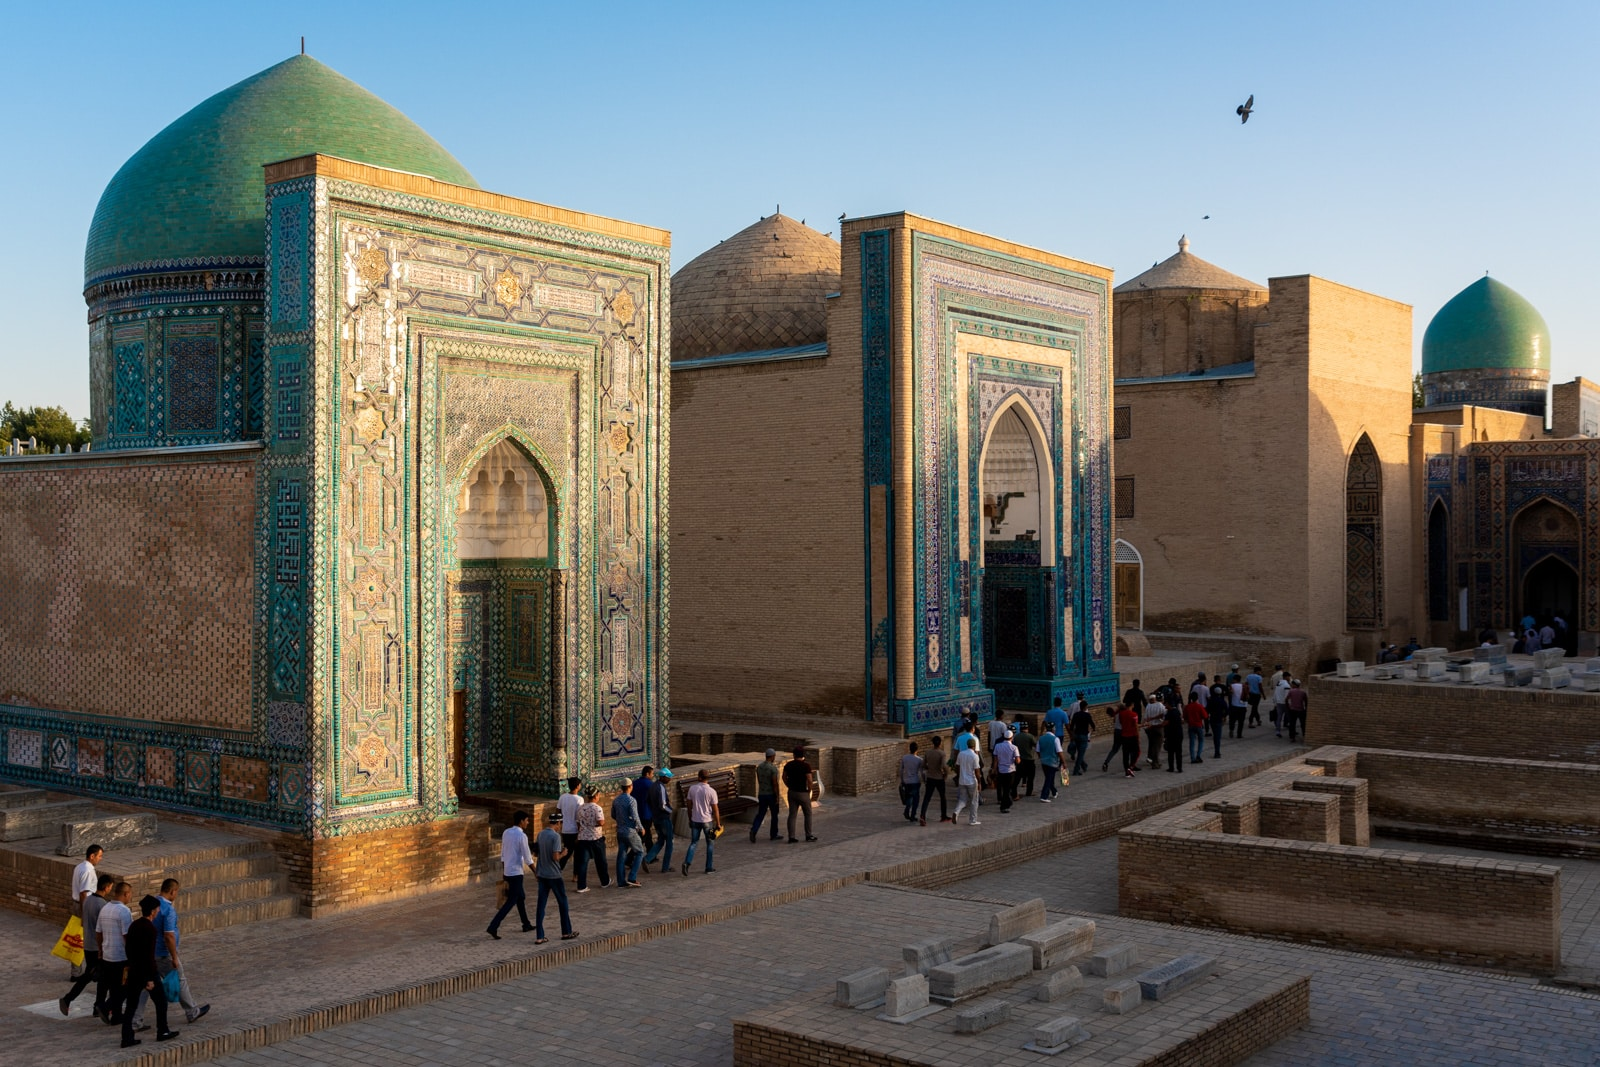 People walking through Shah-i-Zinda necropolis after praying